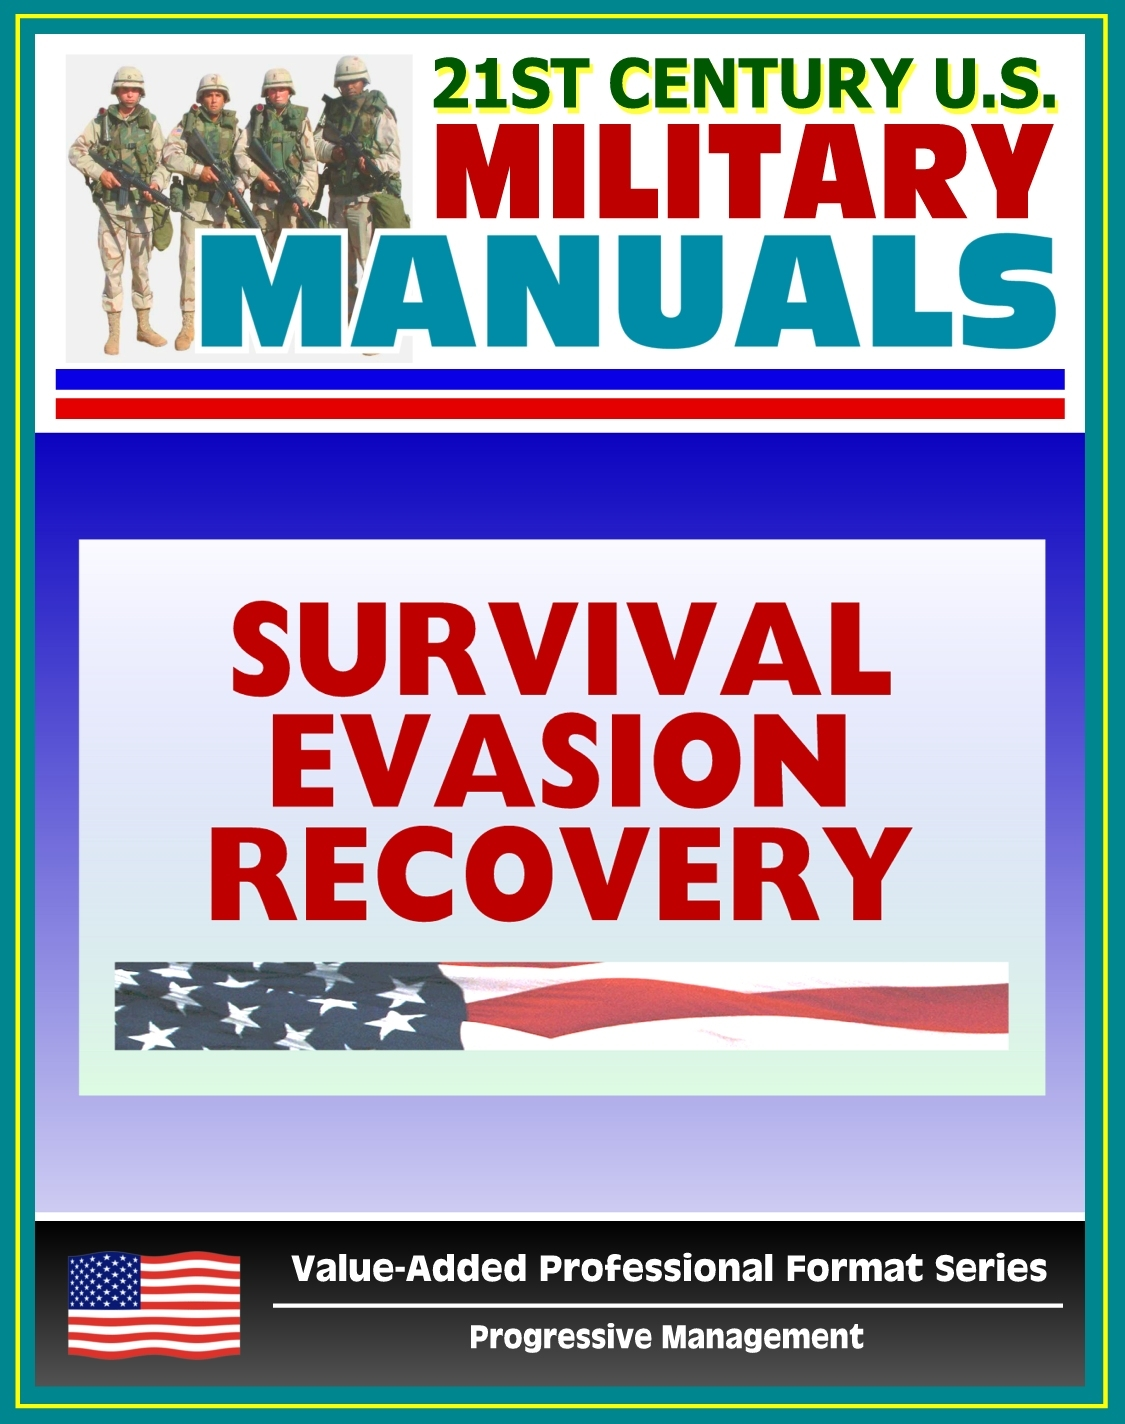 21st Century U.S. Military Manuals: Multiservice Procedures for Survival, Evasion, and Recovery - FM 21-76-1 - Camouflage, Concealment, Navigation (Value-Added Professional Format Series) By: Progressive Management